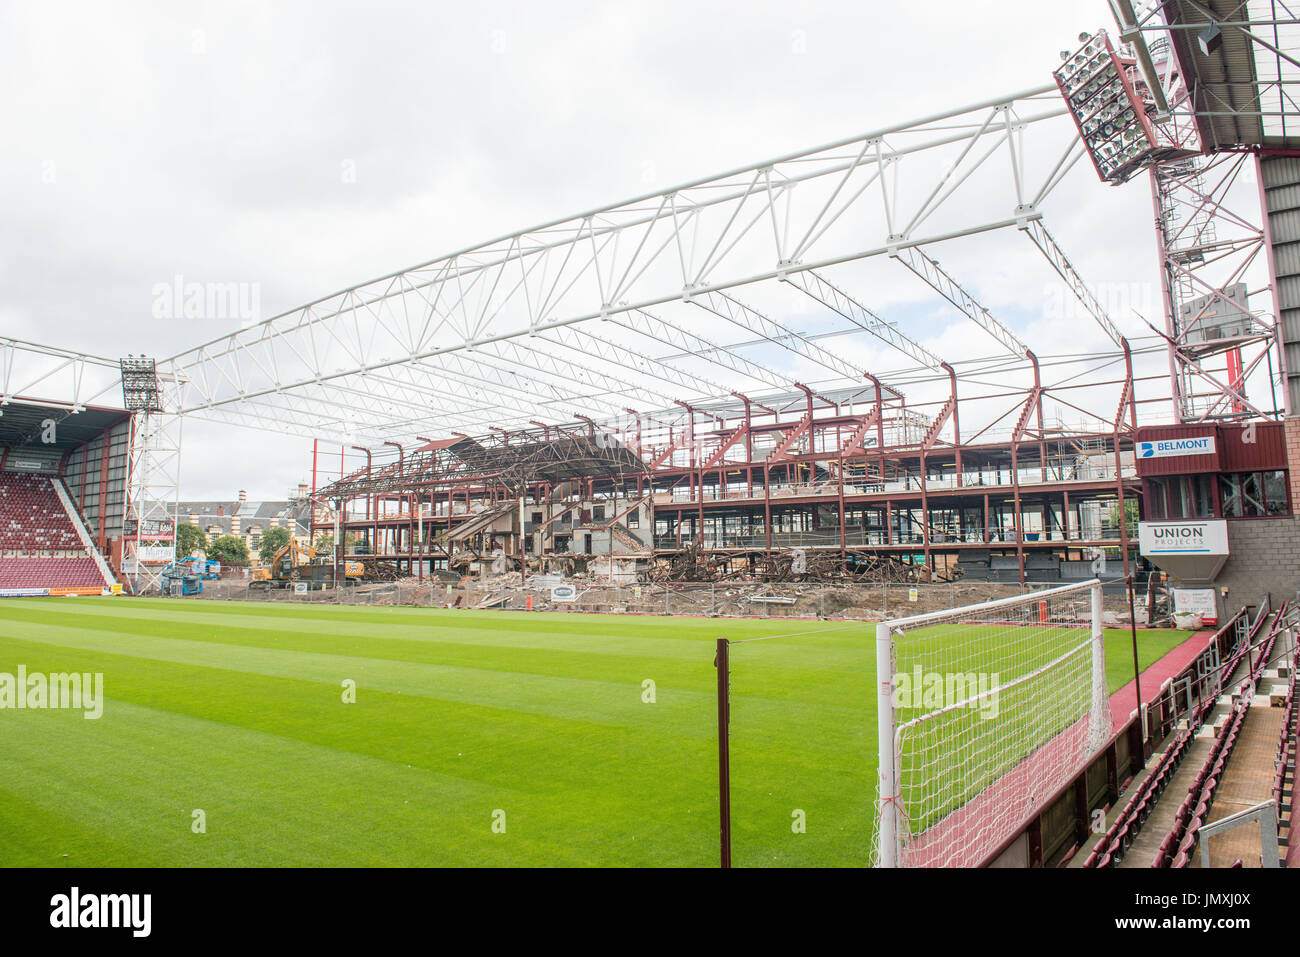 WWW.IANGEORGESONPHOTOGRAPHY.CO.UK Picture: Old stand demolition, Leitch stand Heart of Midlothian auction off parts of their main stand - Stock Image